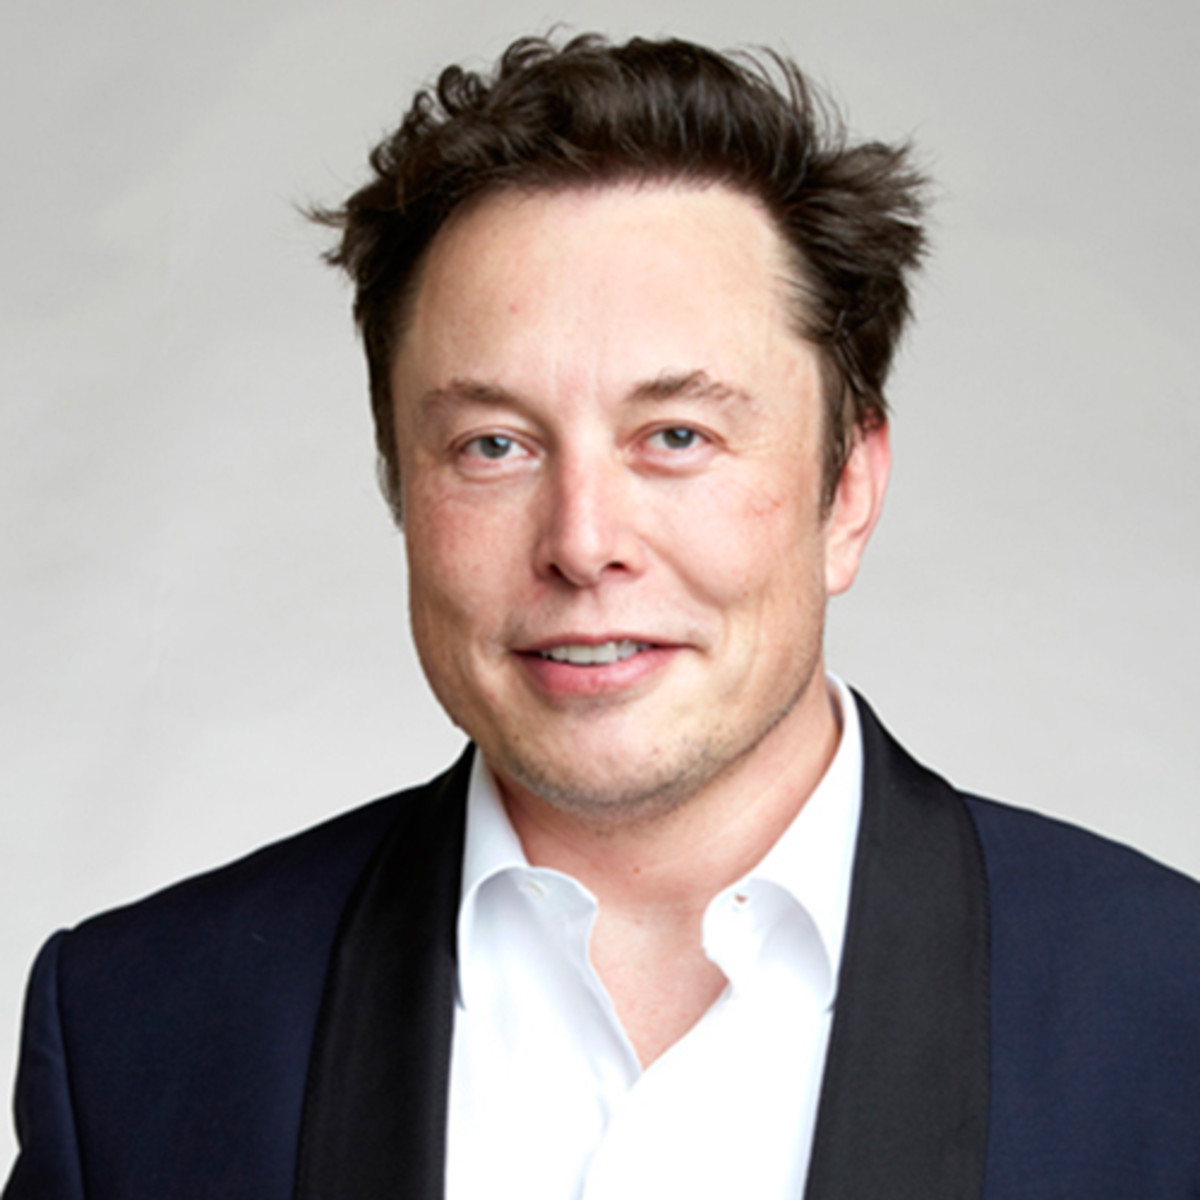 Best quotes by Elon Musk